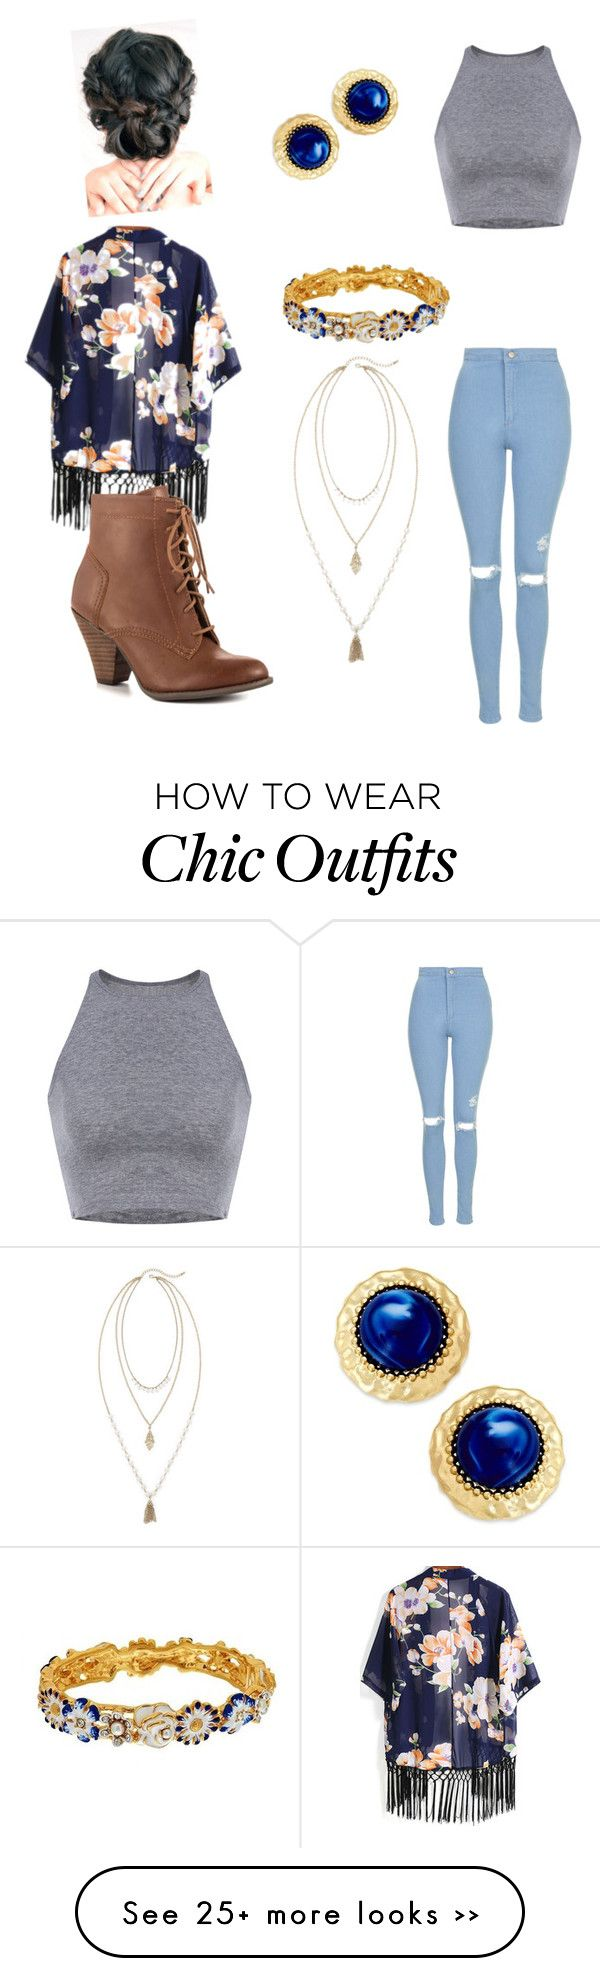 """""""Casual Fall 1"""" by chelcduncan on Polyvore"""